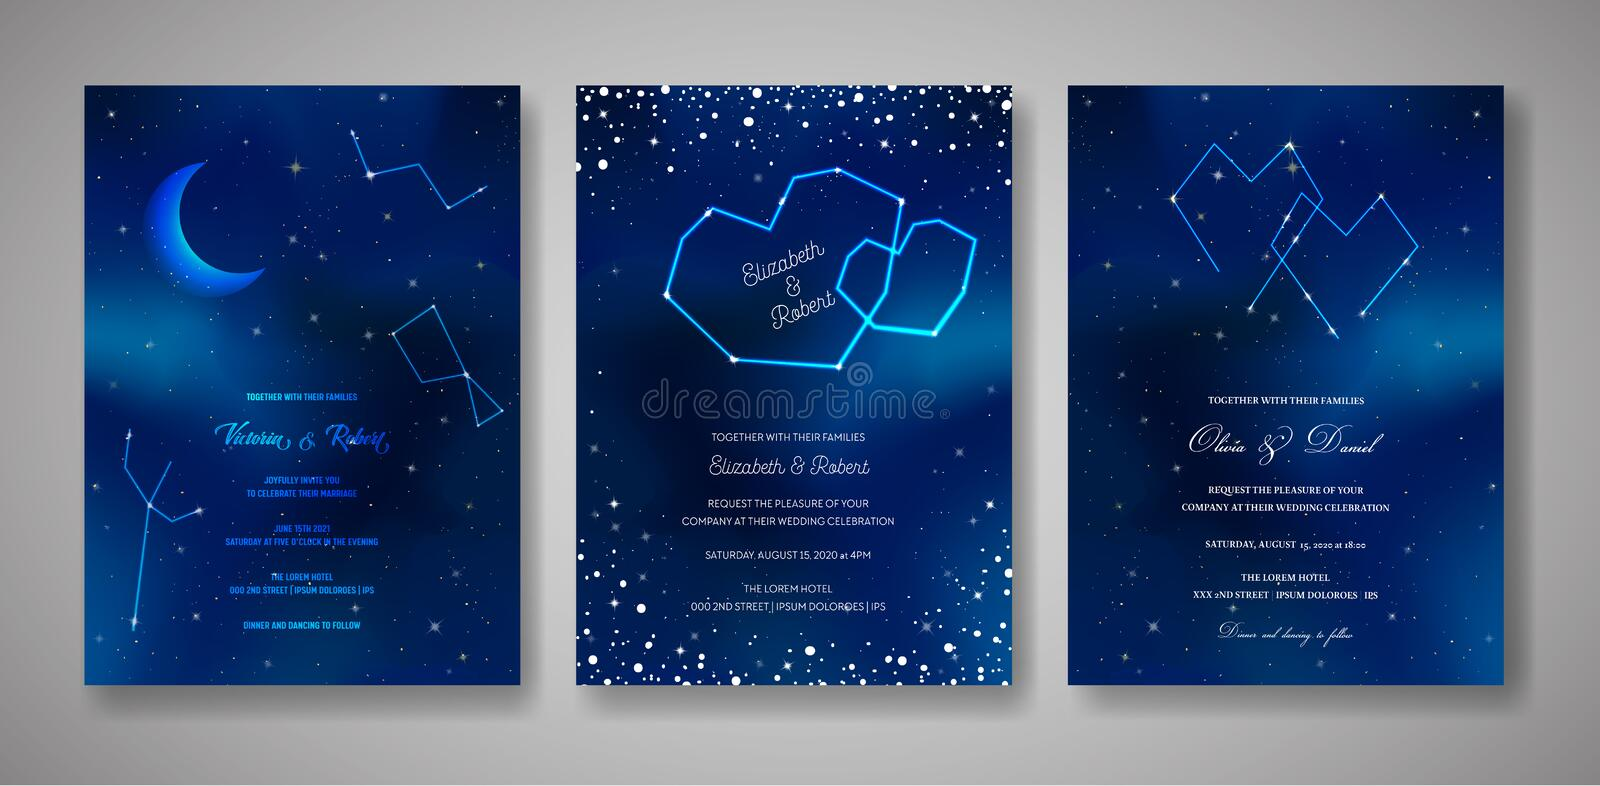 Set of Starry Night Wedding Invitation Cards, Save the Date Celestial Template of Galaxy, Space, Stars, trendy Sky vector illustration